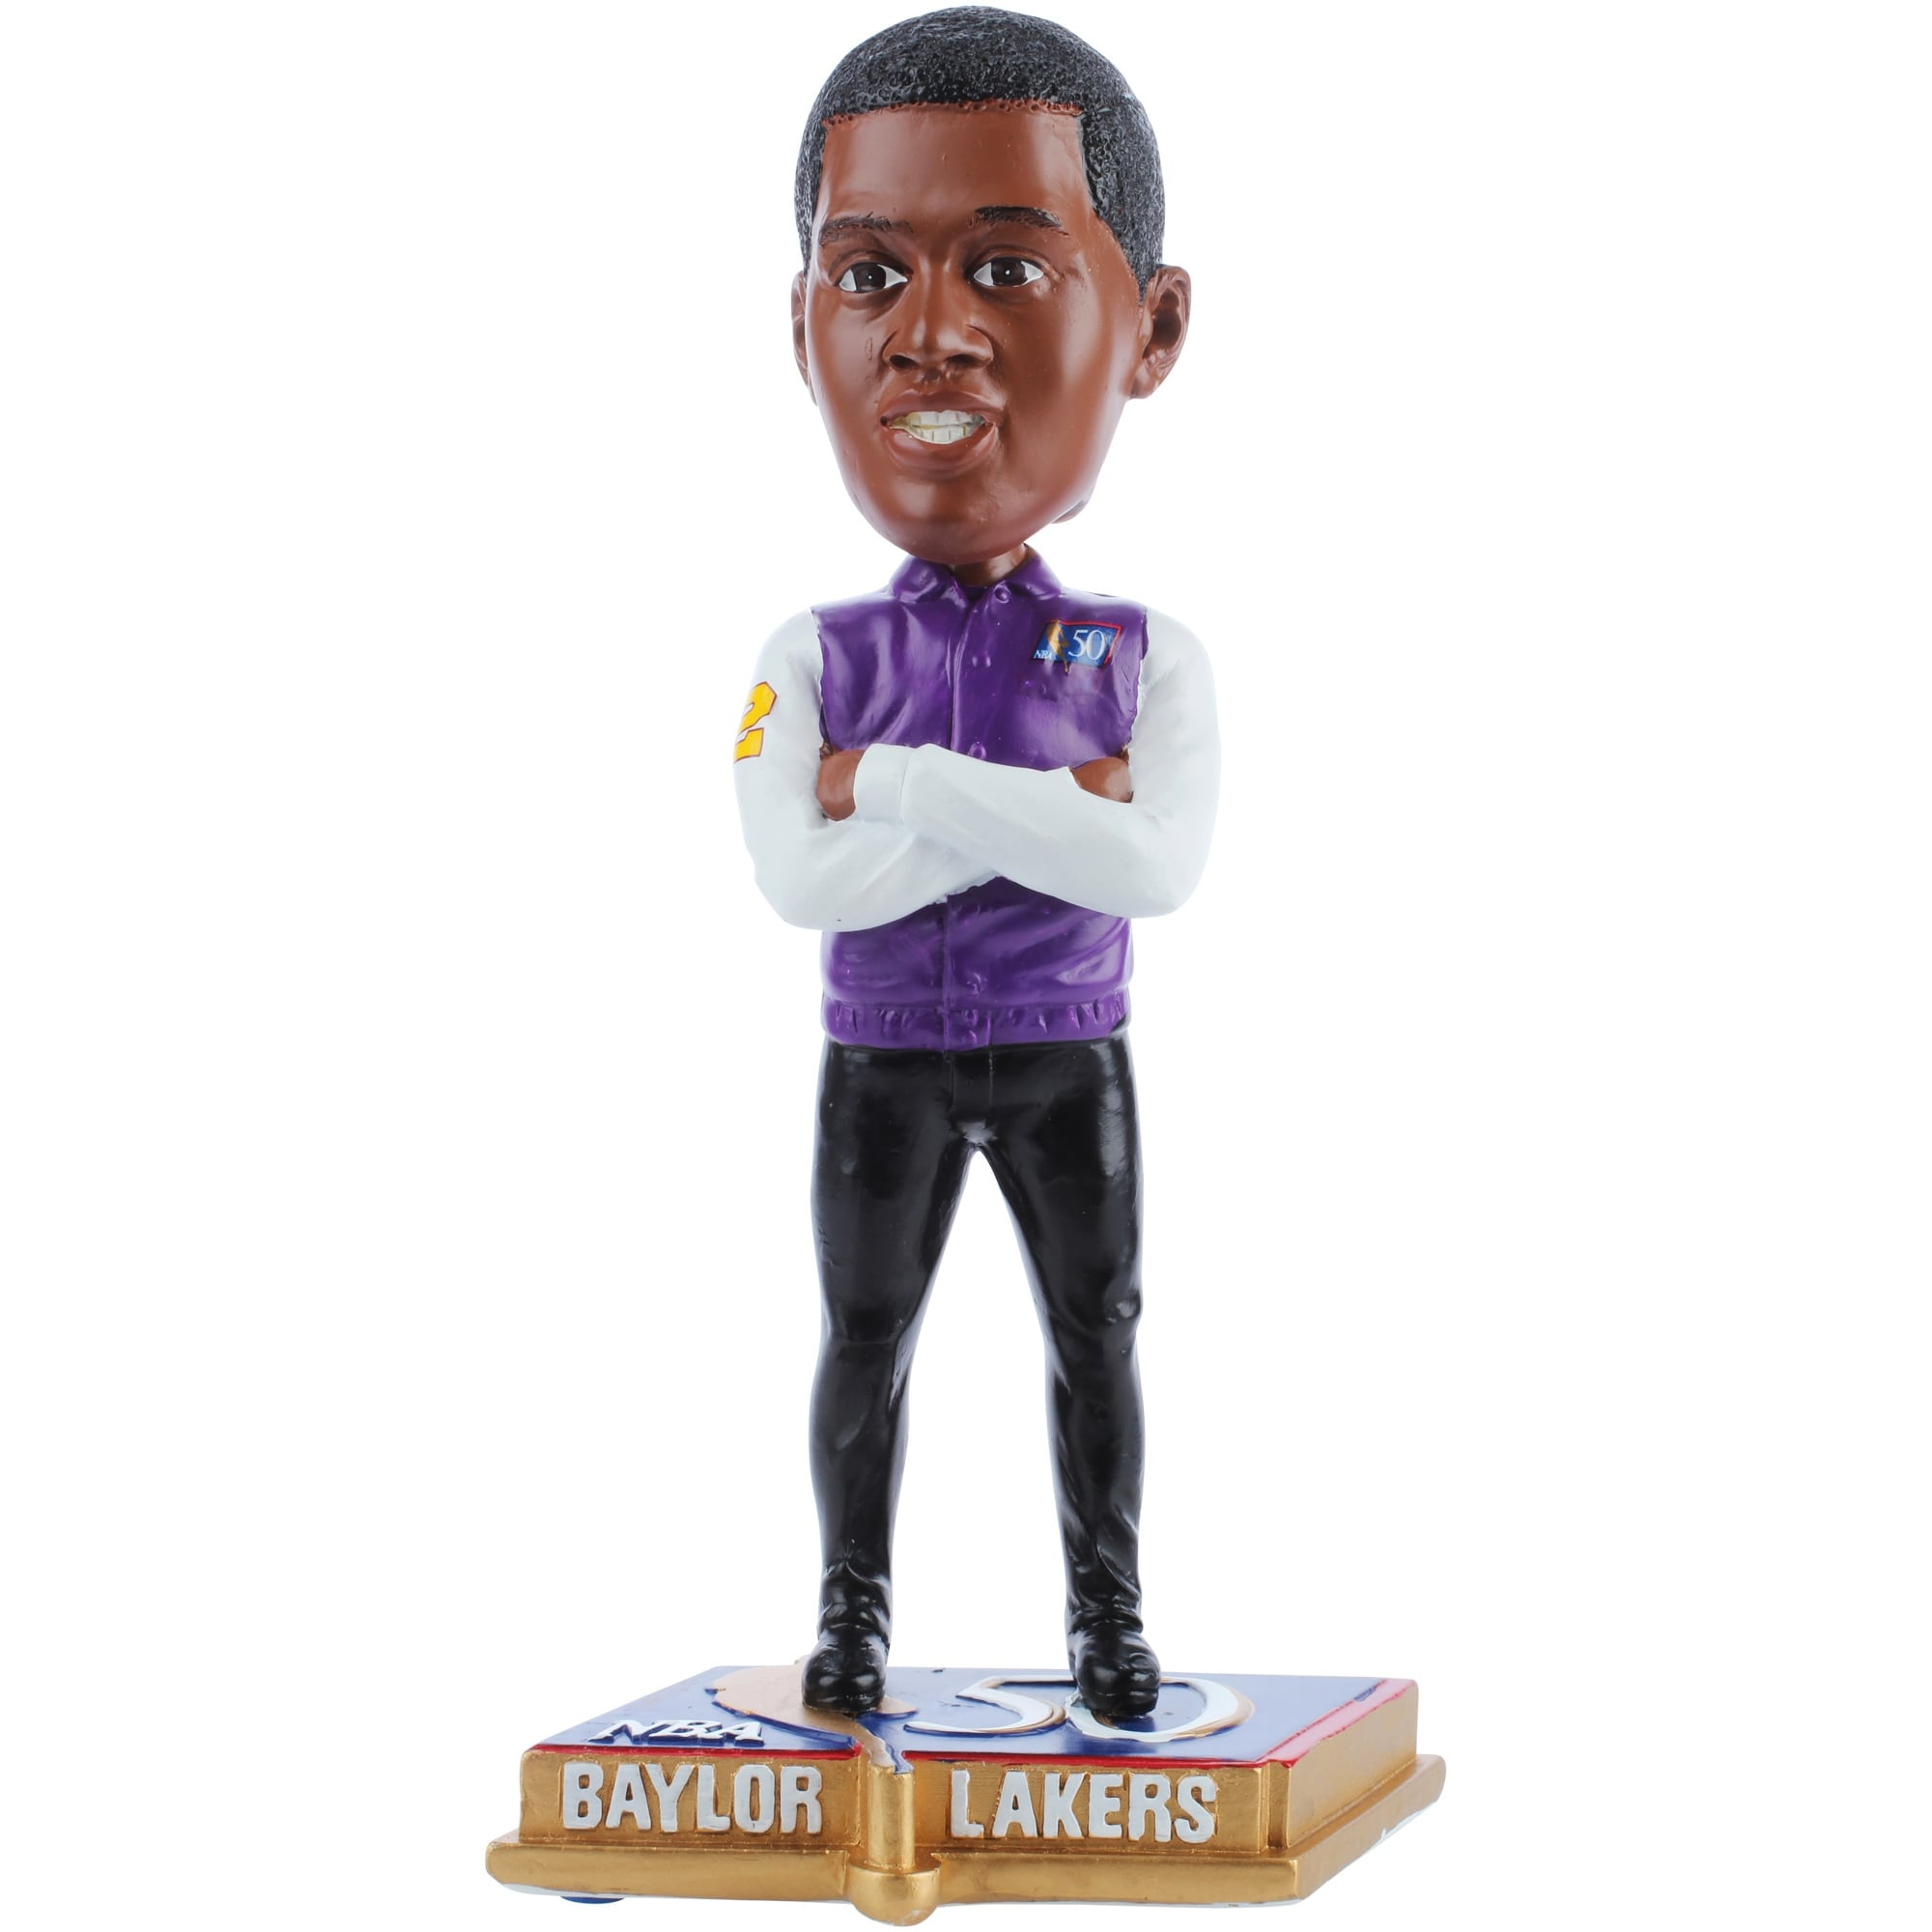 Elgin Baylor Los Angeles Lakers 50 Greatest NBA Players Bobblehead